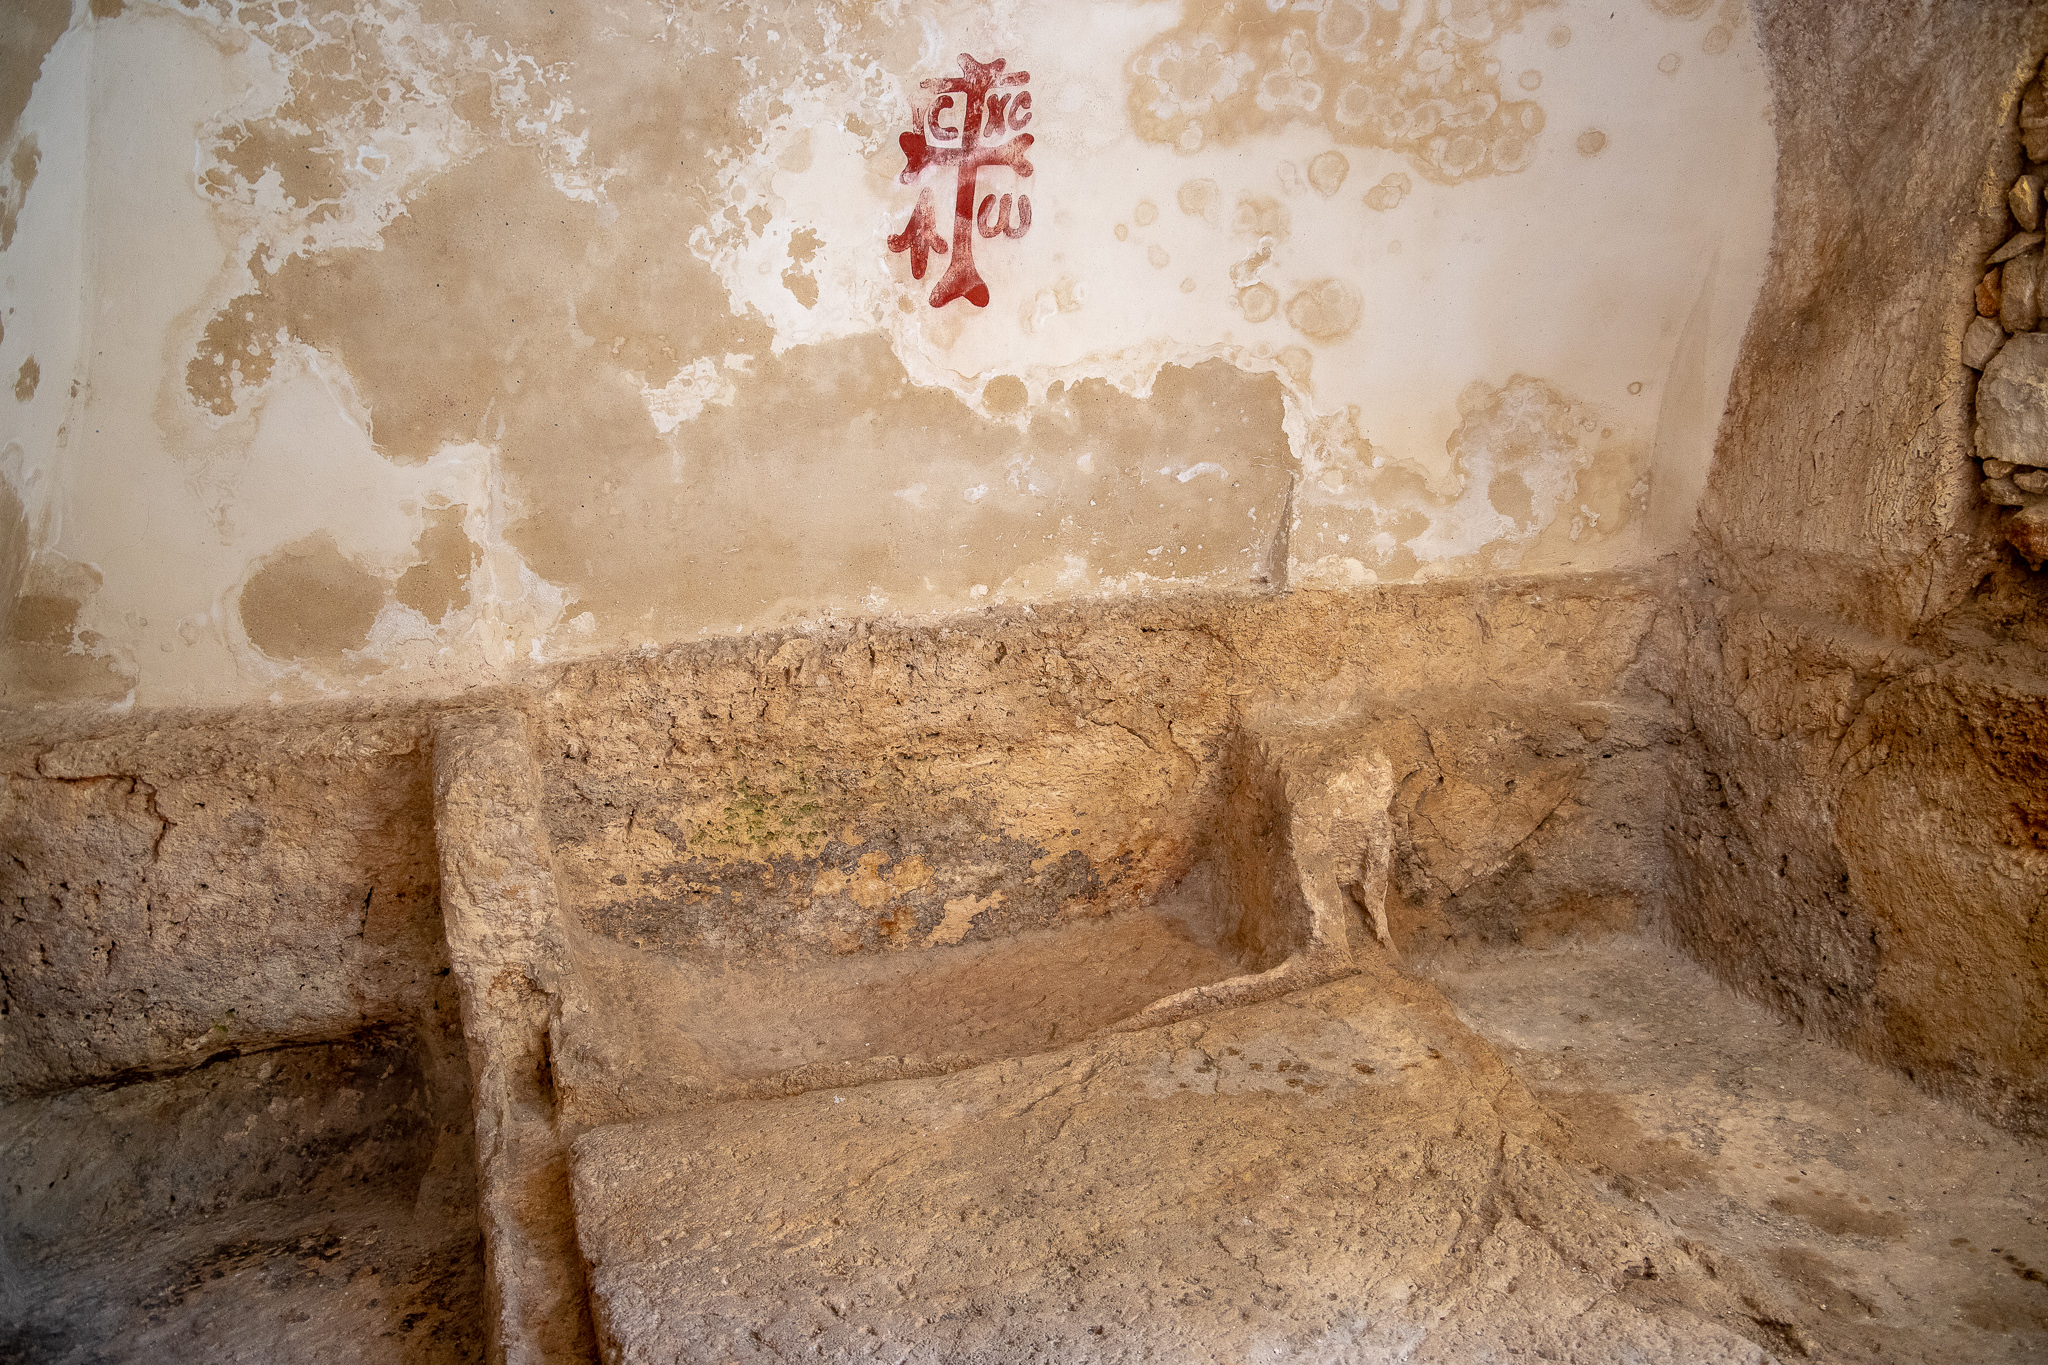 Inside the tomb with Byzantine cross grafiti